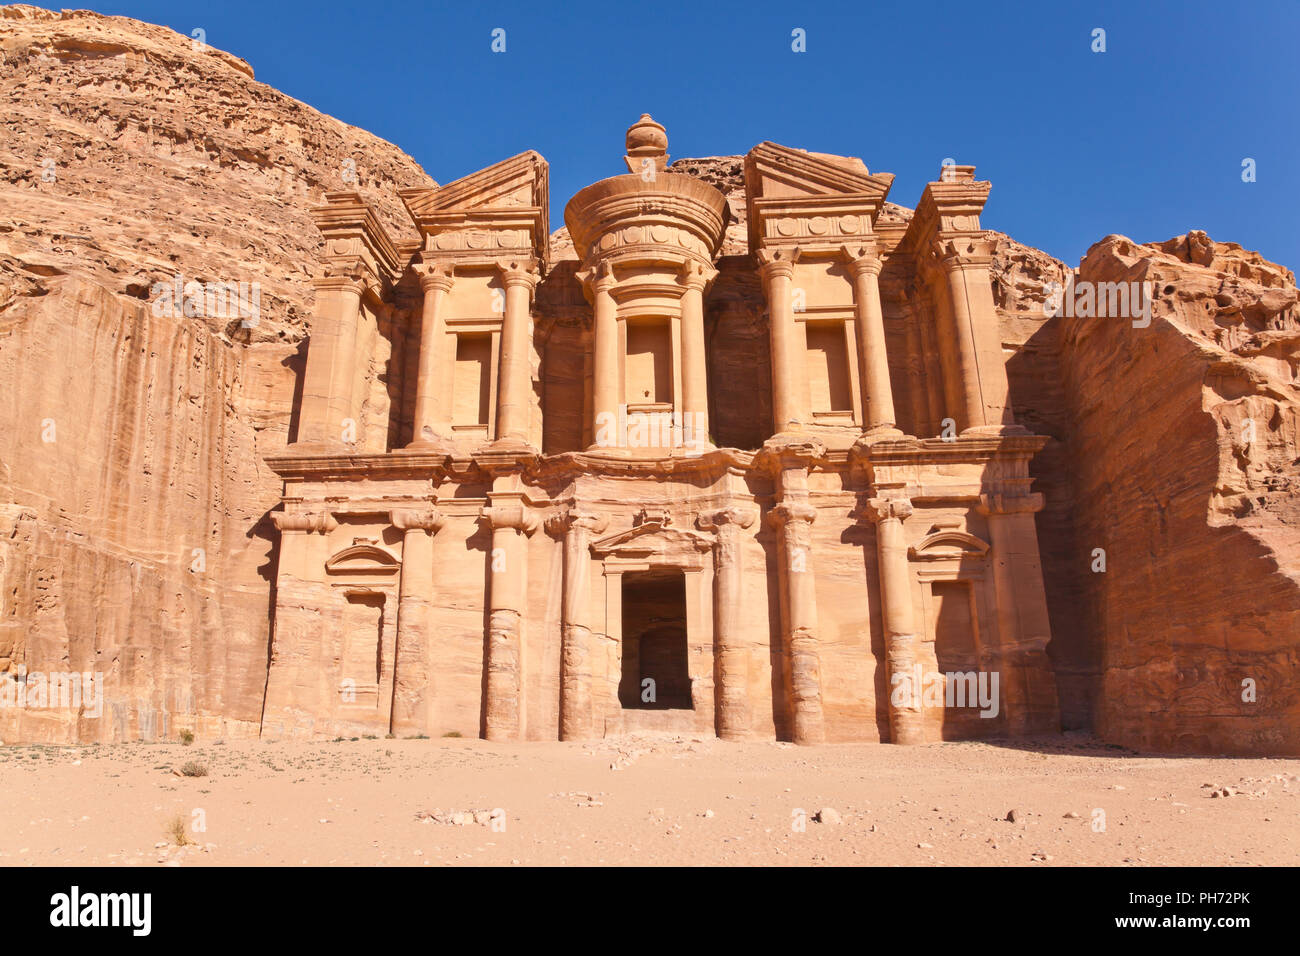 Facade of monastery in petra, jordan Stock Photo